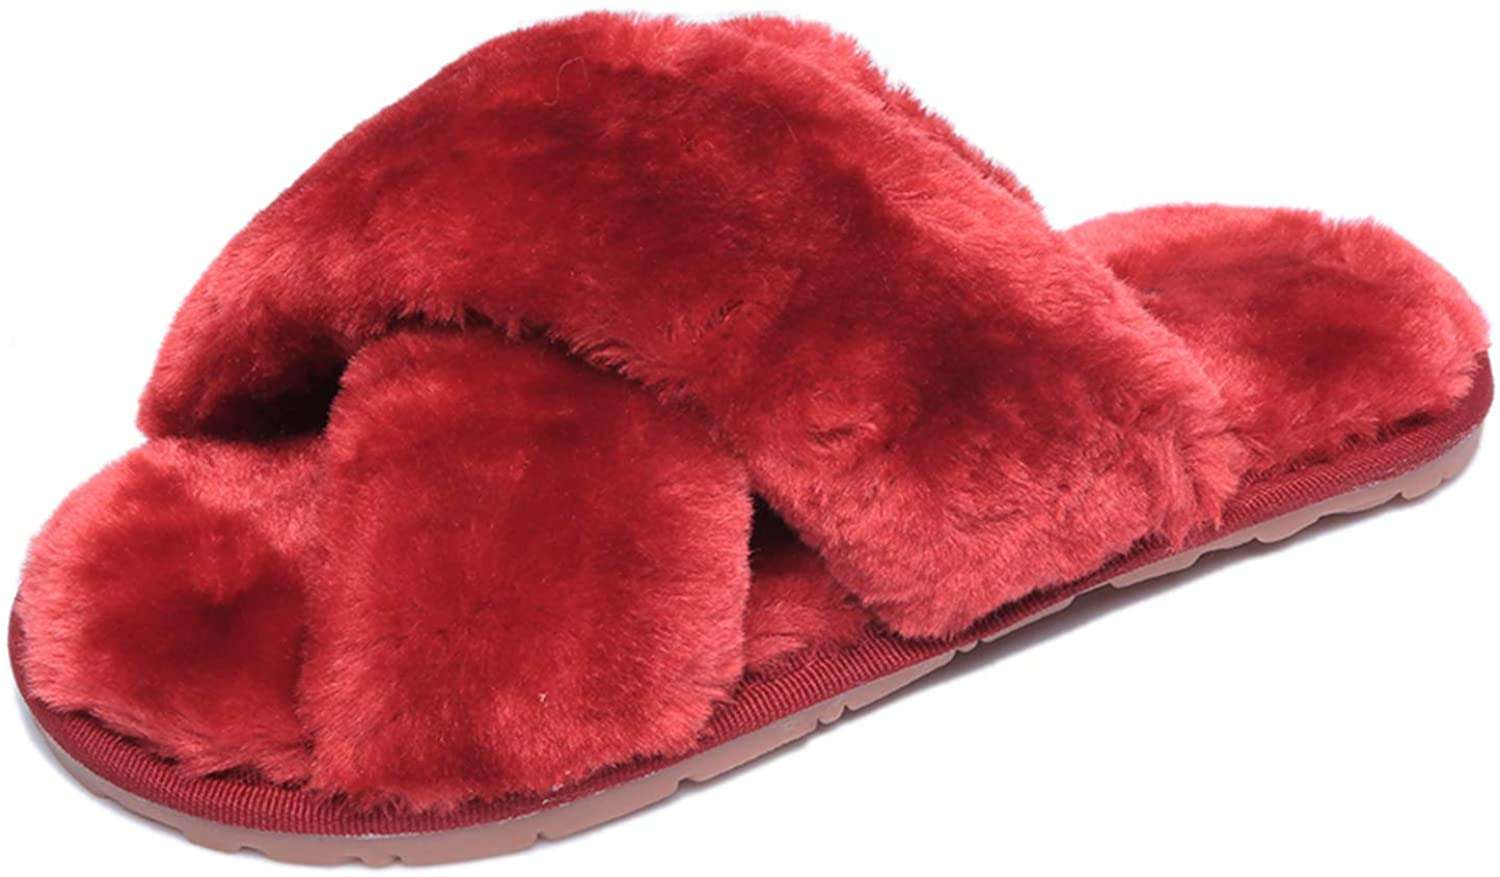 Women's Fluffy Plush Slippers Cross Band Slippers Faux Fur House Slippers Fashion Indoor or Outdoor Slippers